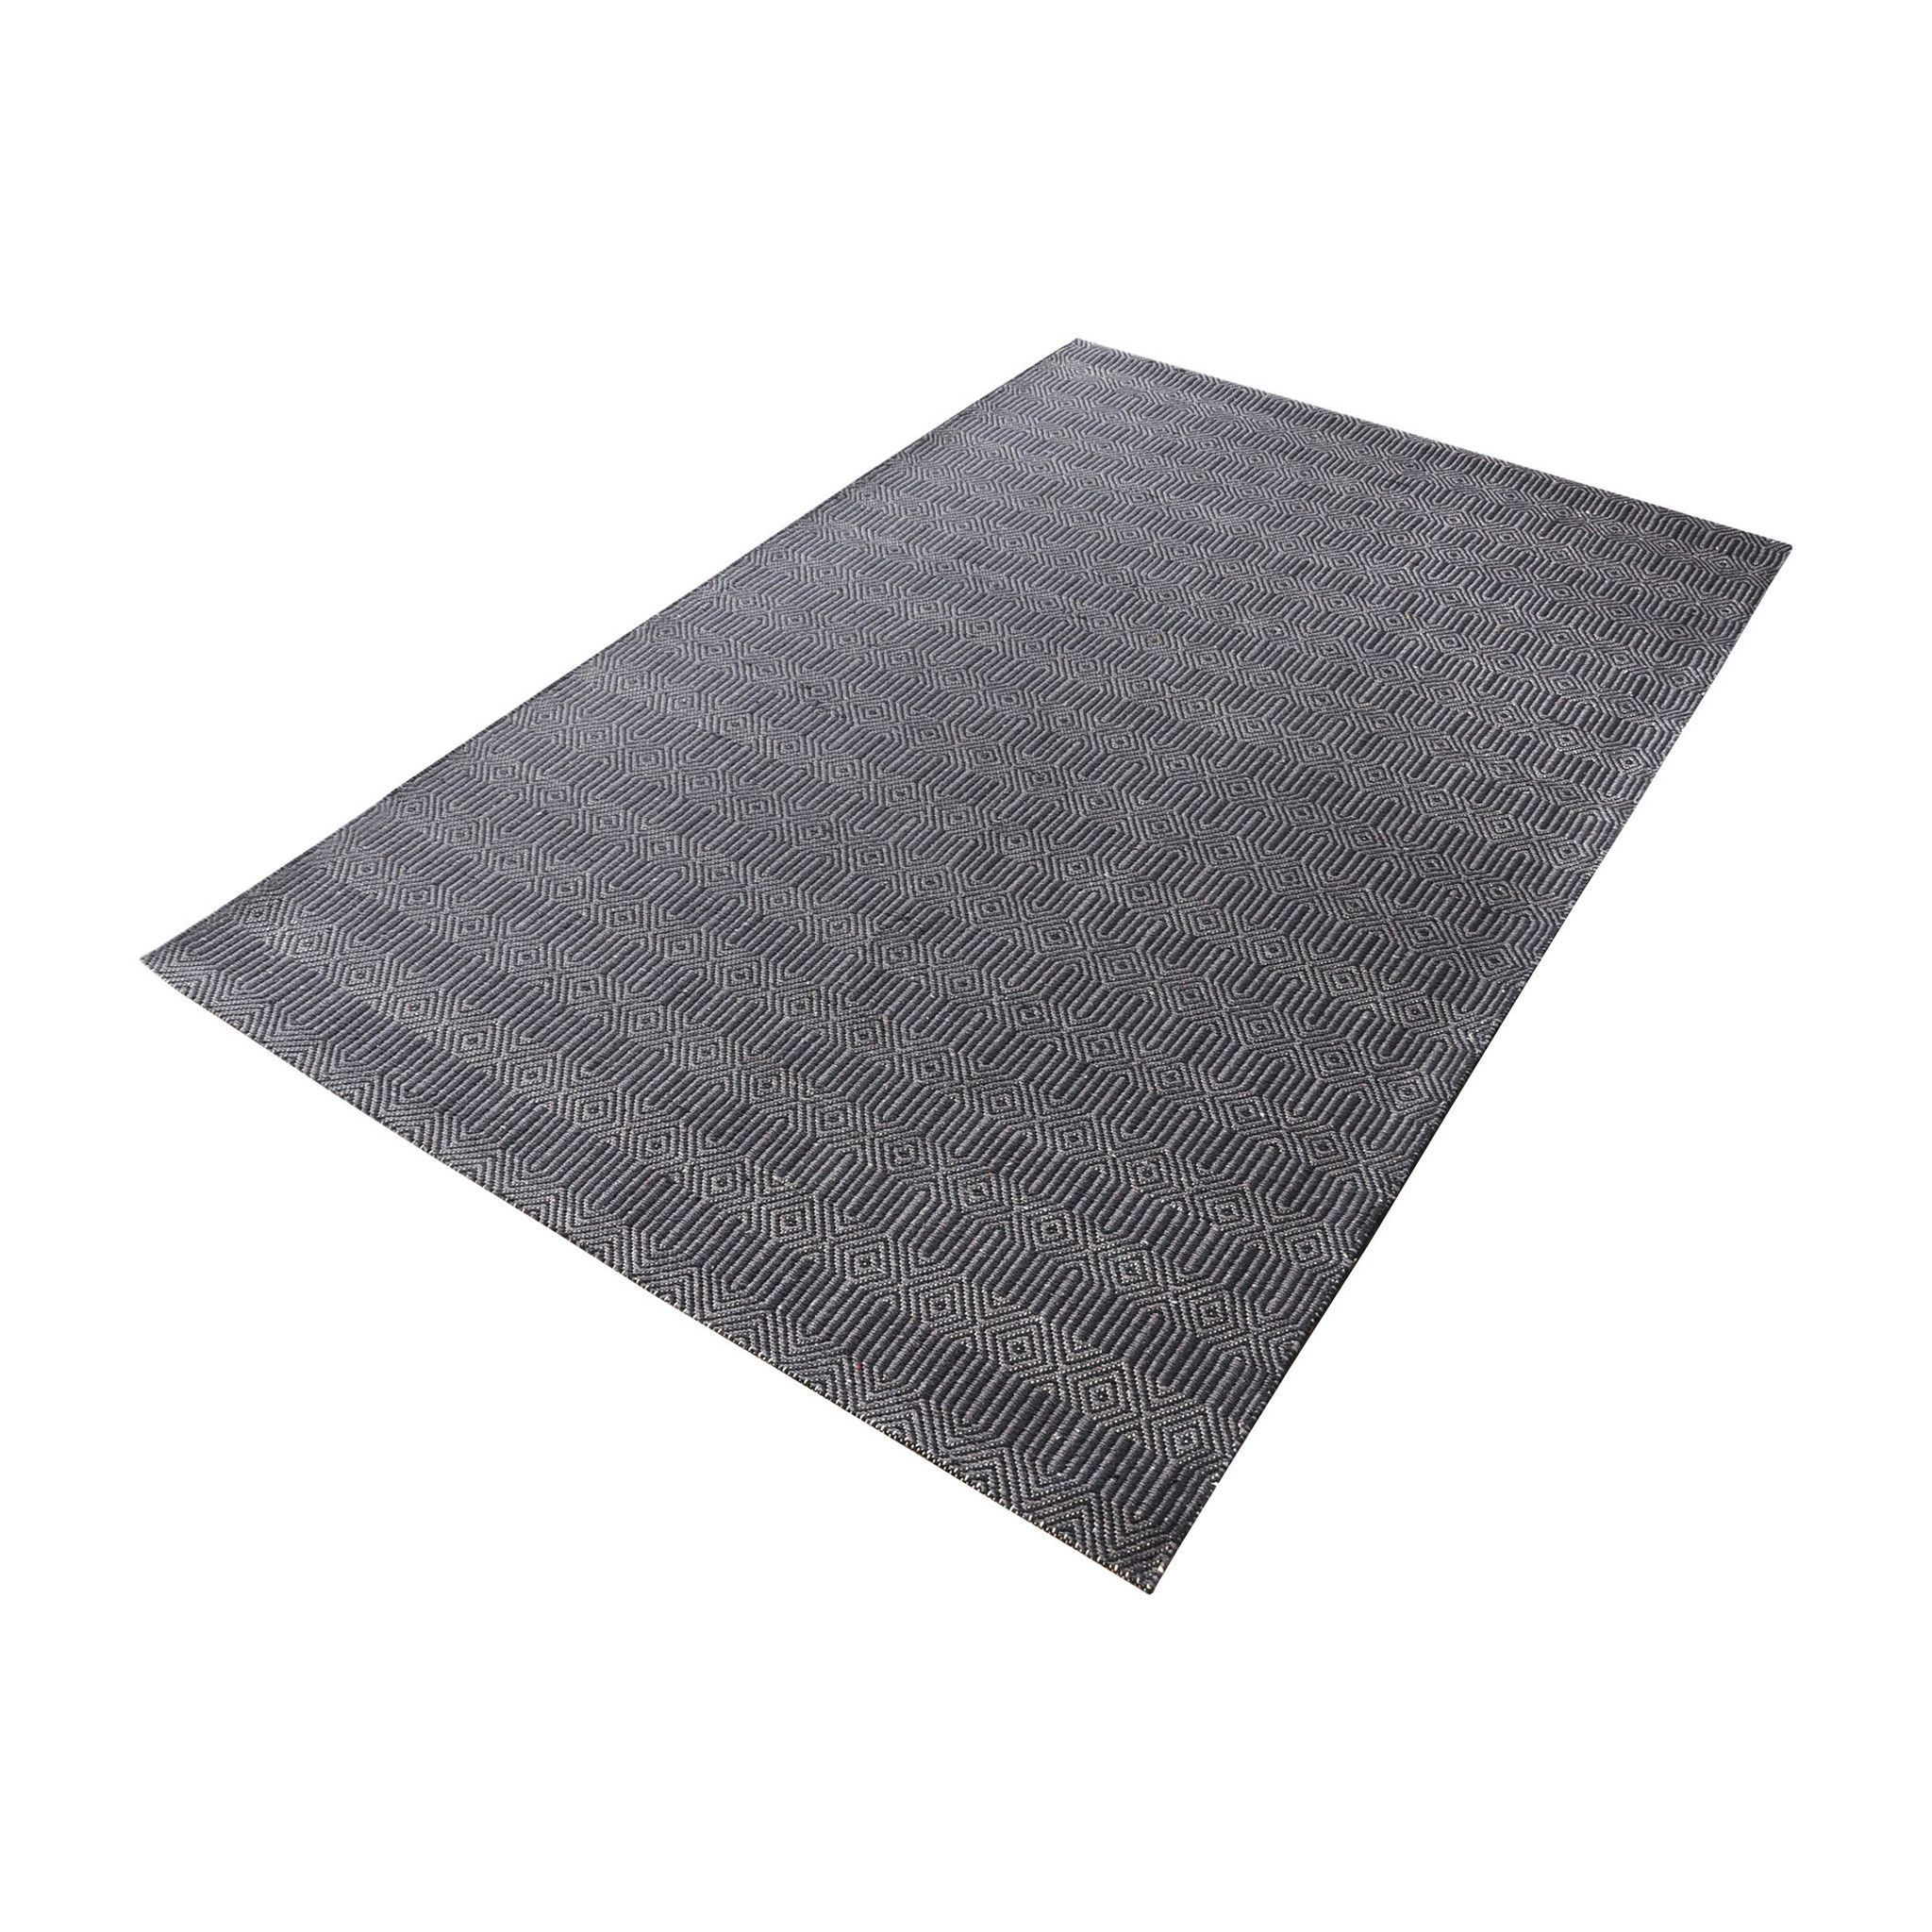 Lazy Susan Ronal Handwoven Cotton Flatweave In Charcoal - 3ft x 5ft 8905-090